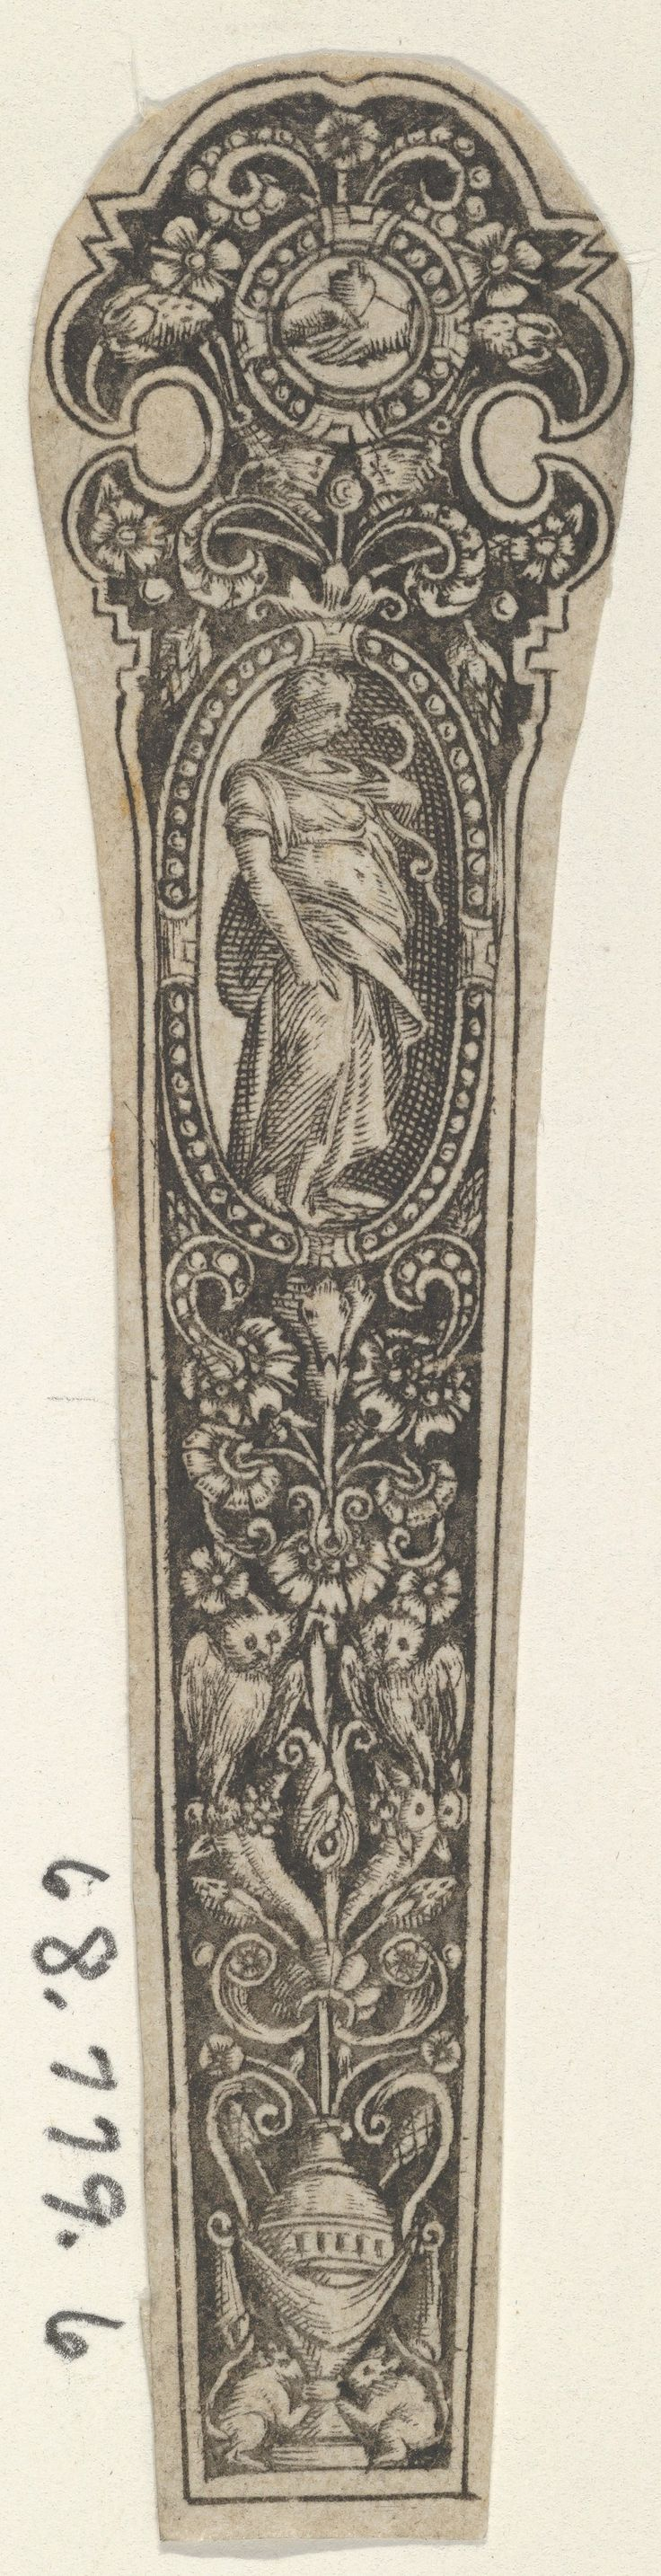 Design for a Knife Handle with the Personification of Prudence Artist: attributed to Johann Theodor de Bry (Netherlandish, Strasbourg 1561–1623 Bad Schwalbach) Date: 1580–1600